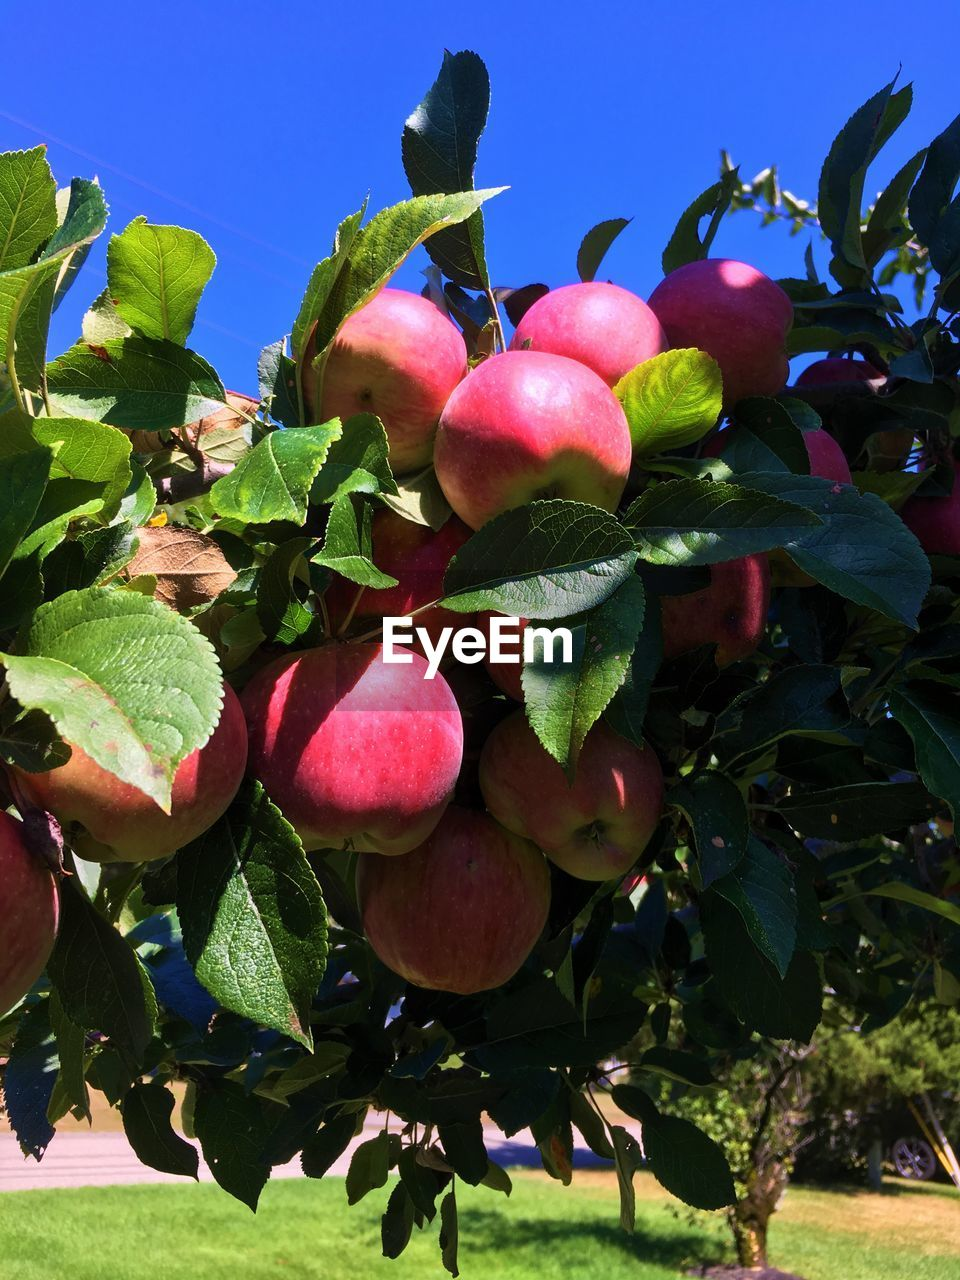 Best apple crop ever! Delicous Apples Beauty In Nature Branch Close-up Day Food Freshness Fruit Green Color Growth Healthy Eating Leaf Low Angle View Nature No People Outdoors Red Tree